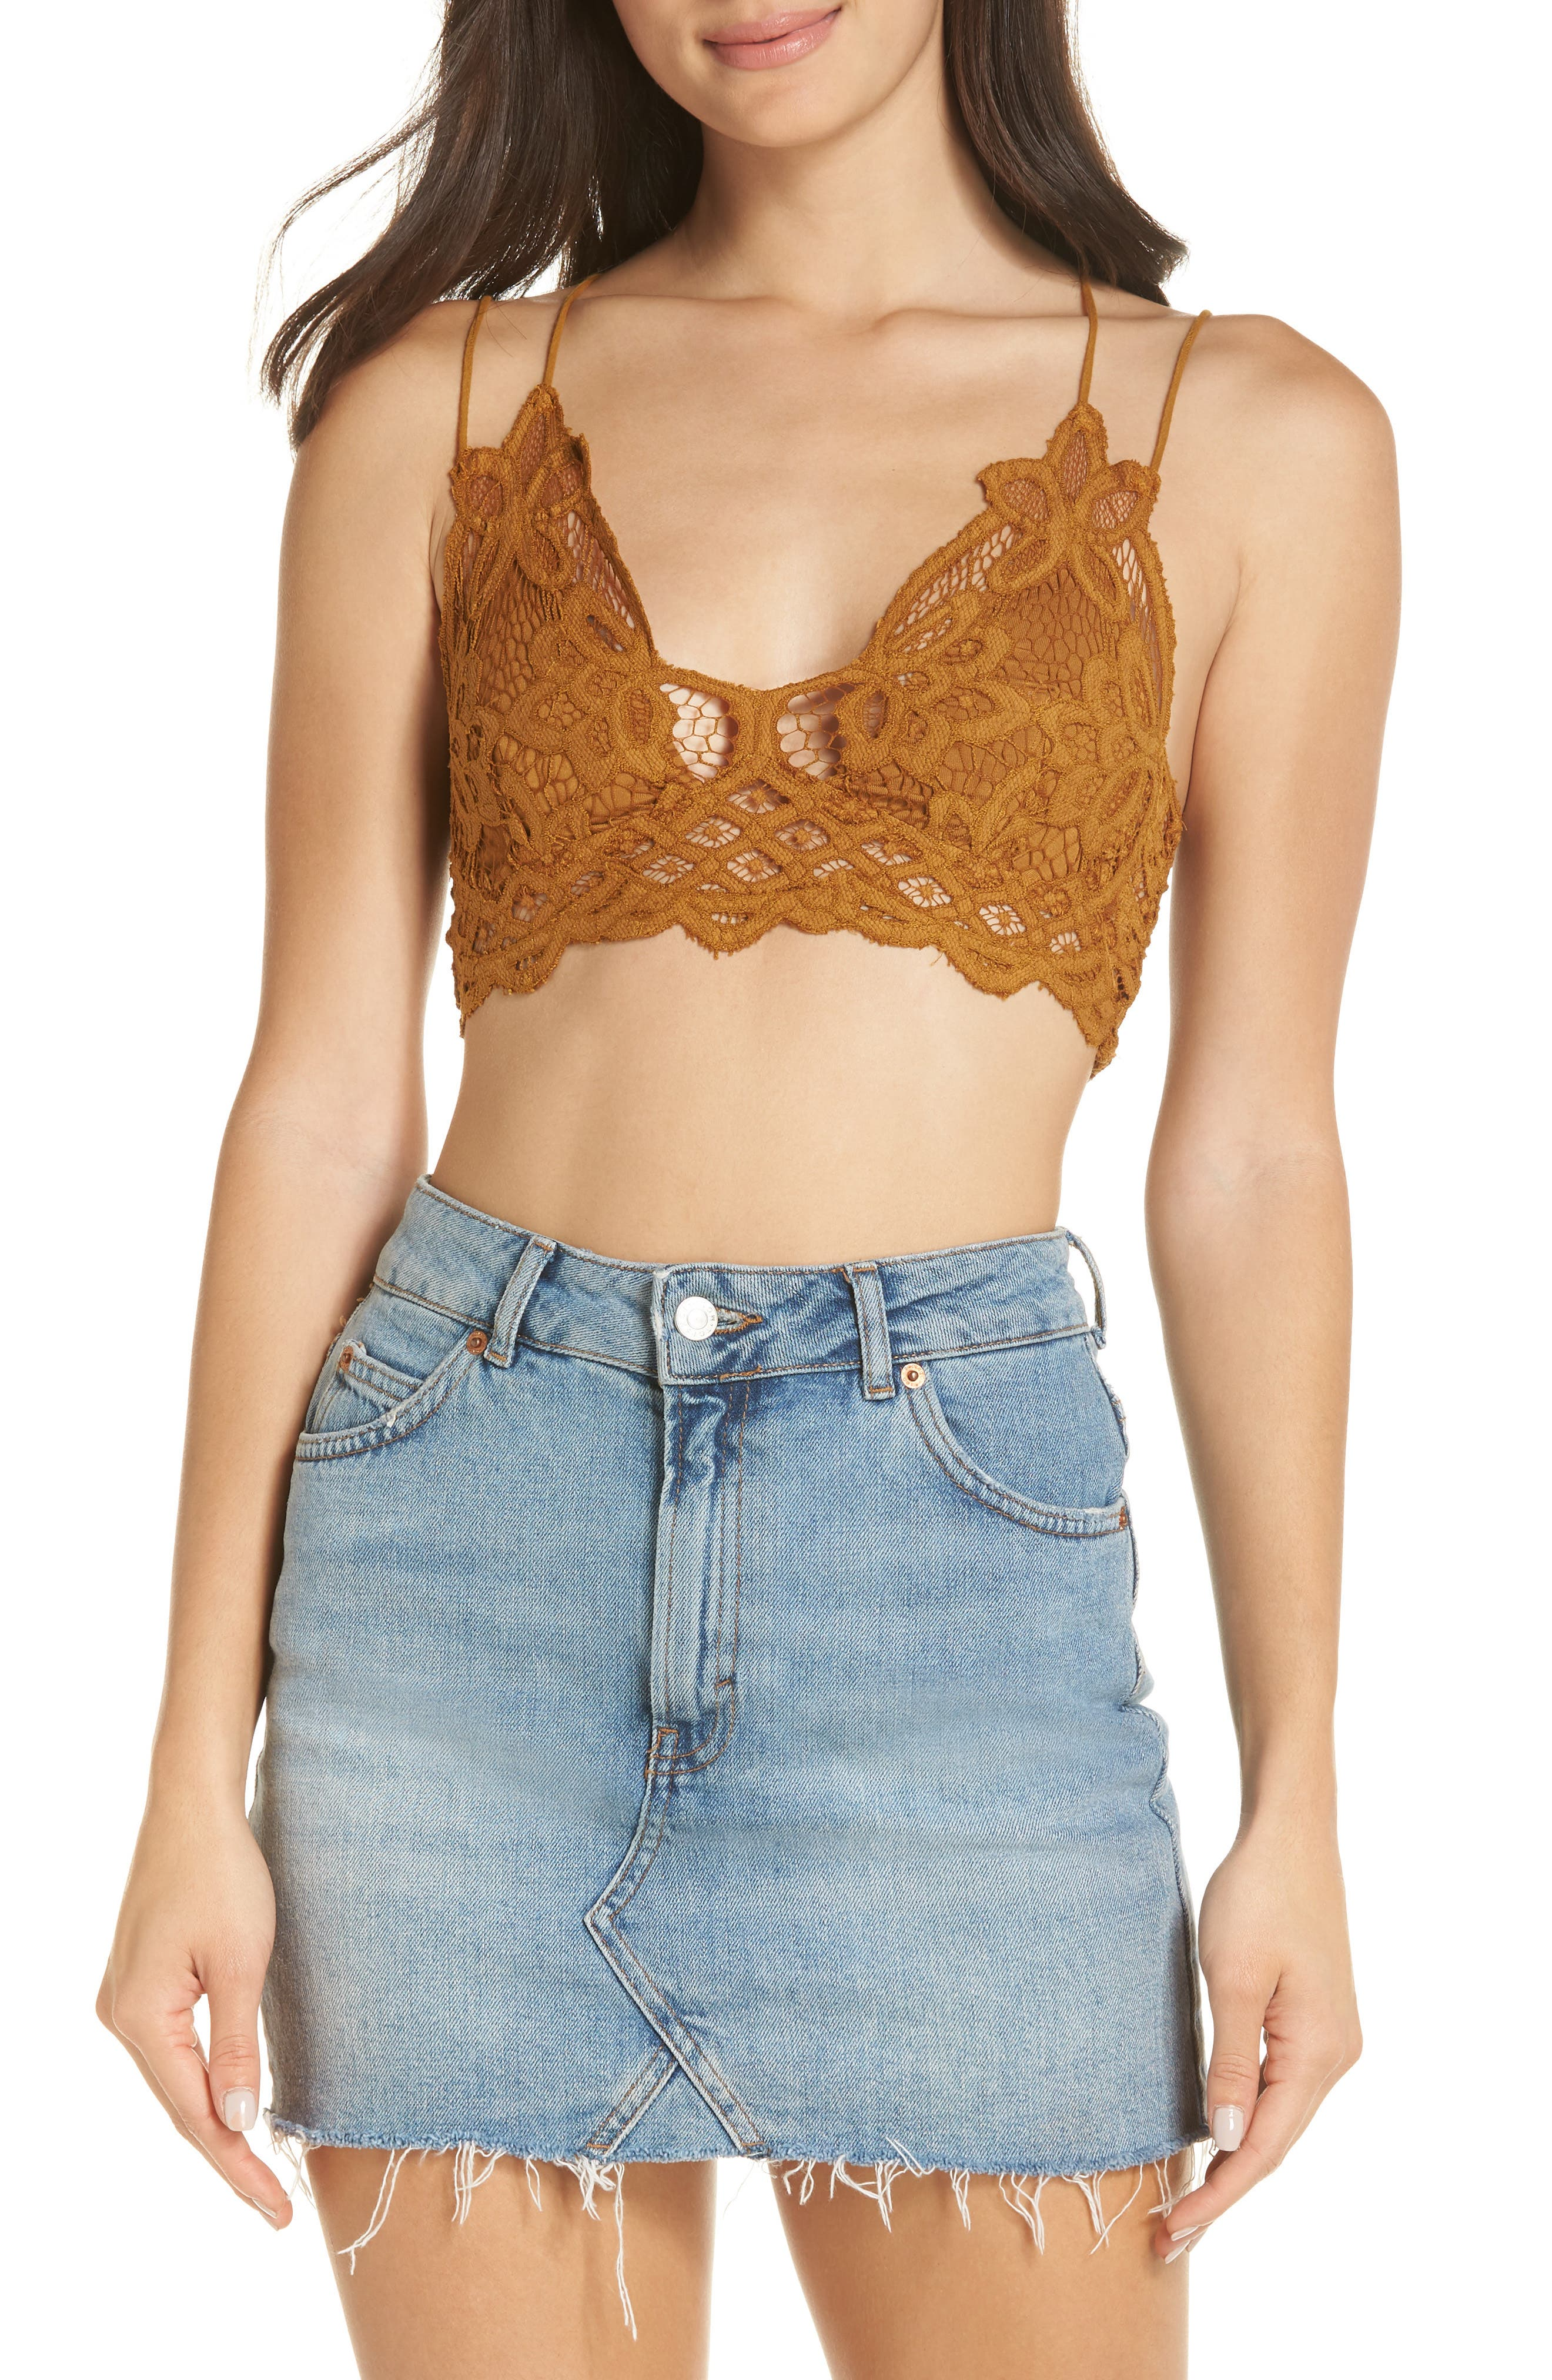 FREE PEOPLE,                             Intimately FP Adella Longline Bralette,                             Alternate thumbnail 4, color,                             GOLD